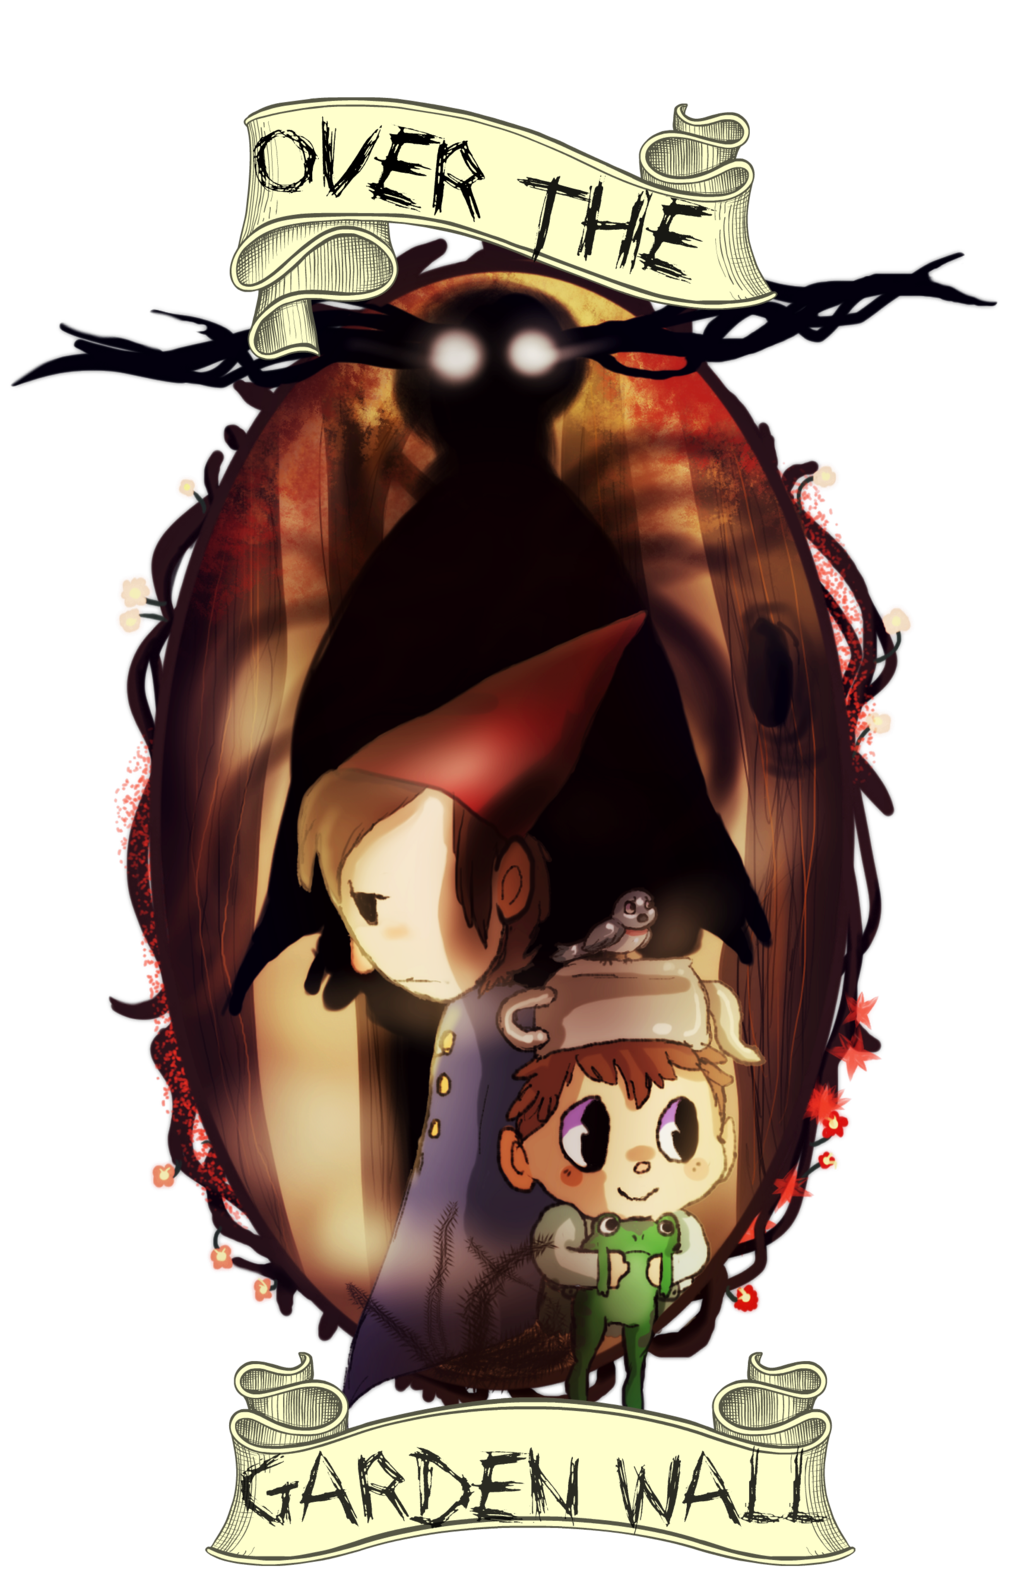 wirt over the garden wall fanart Google Search Over